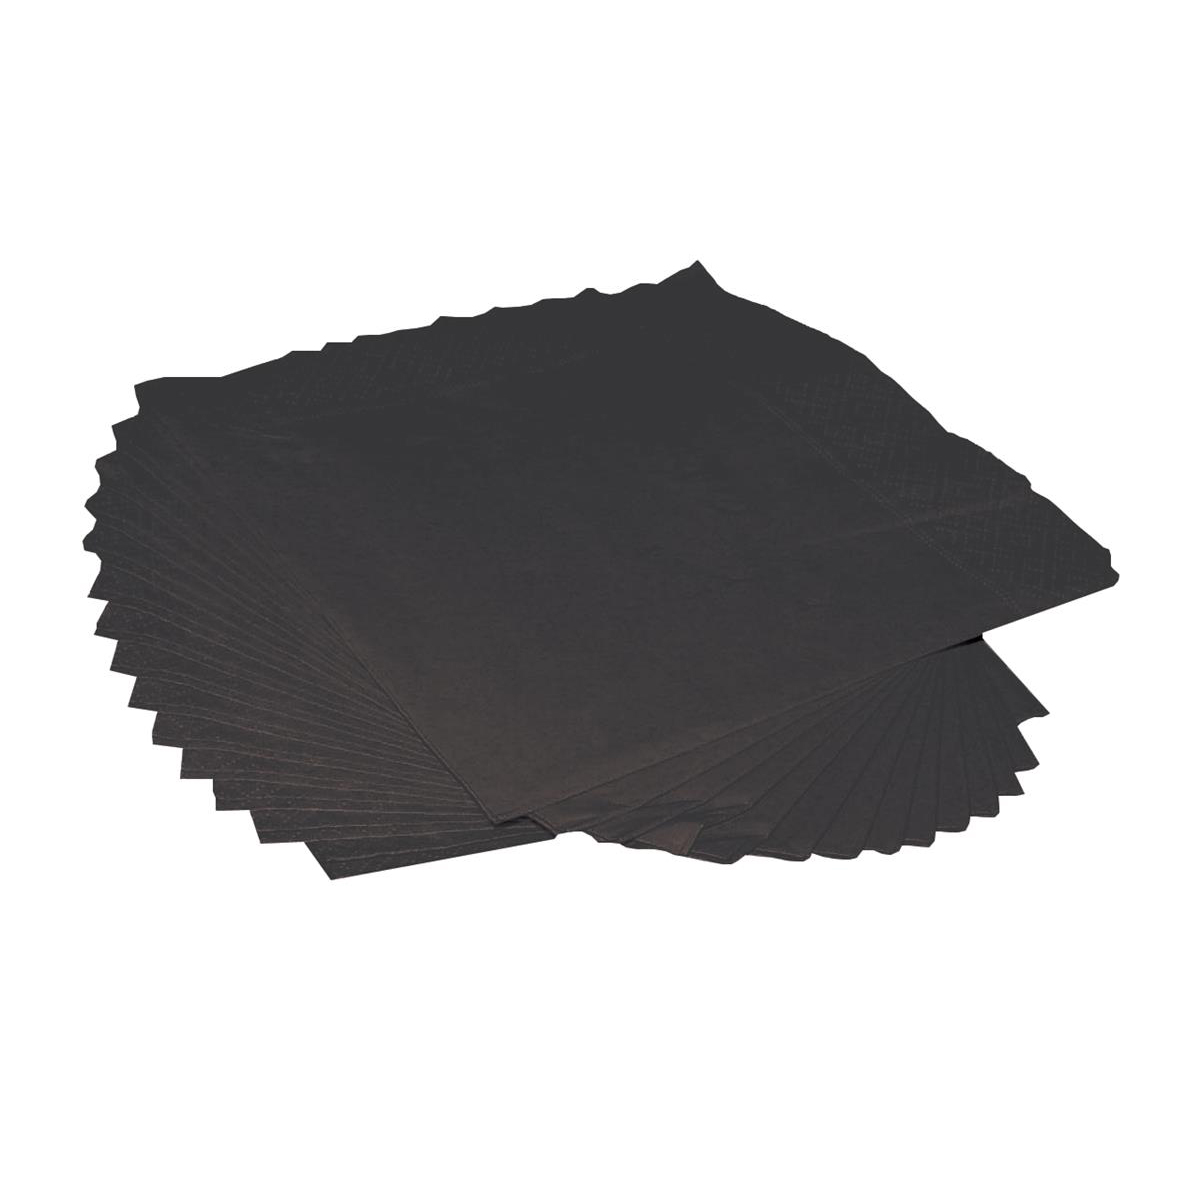 Serviettes / Napkins Napkin 2-Ply 250x250mm Black Pack 250